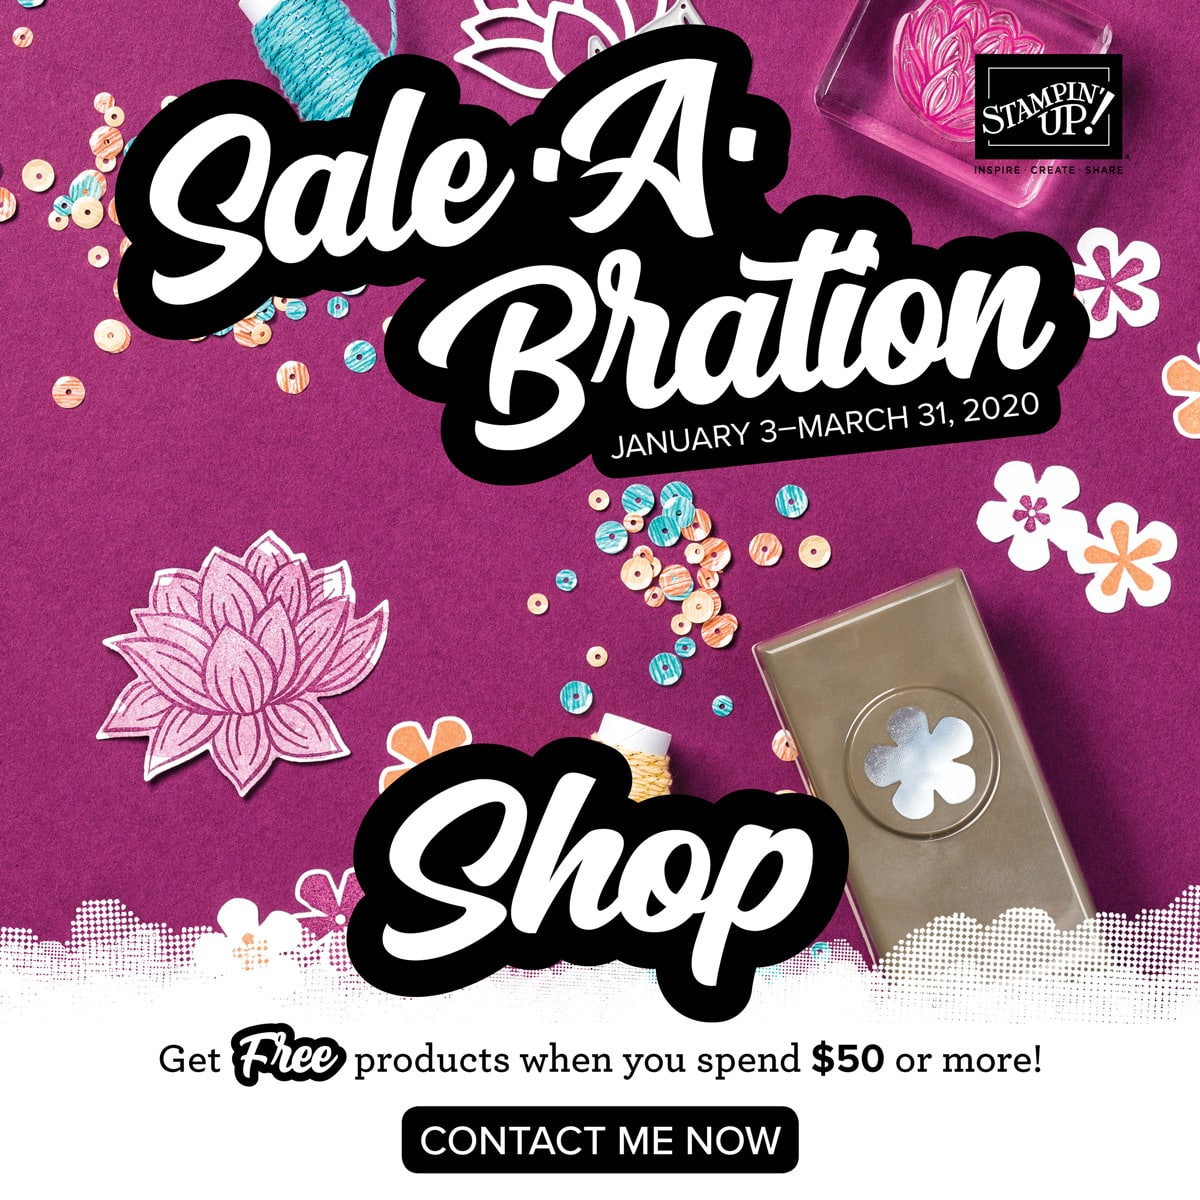 Sale-a-bration Begins!